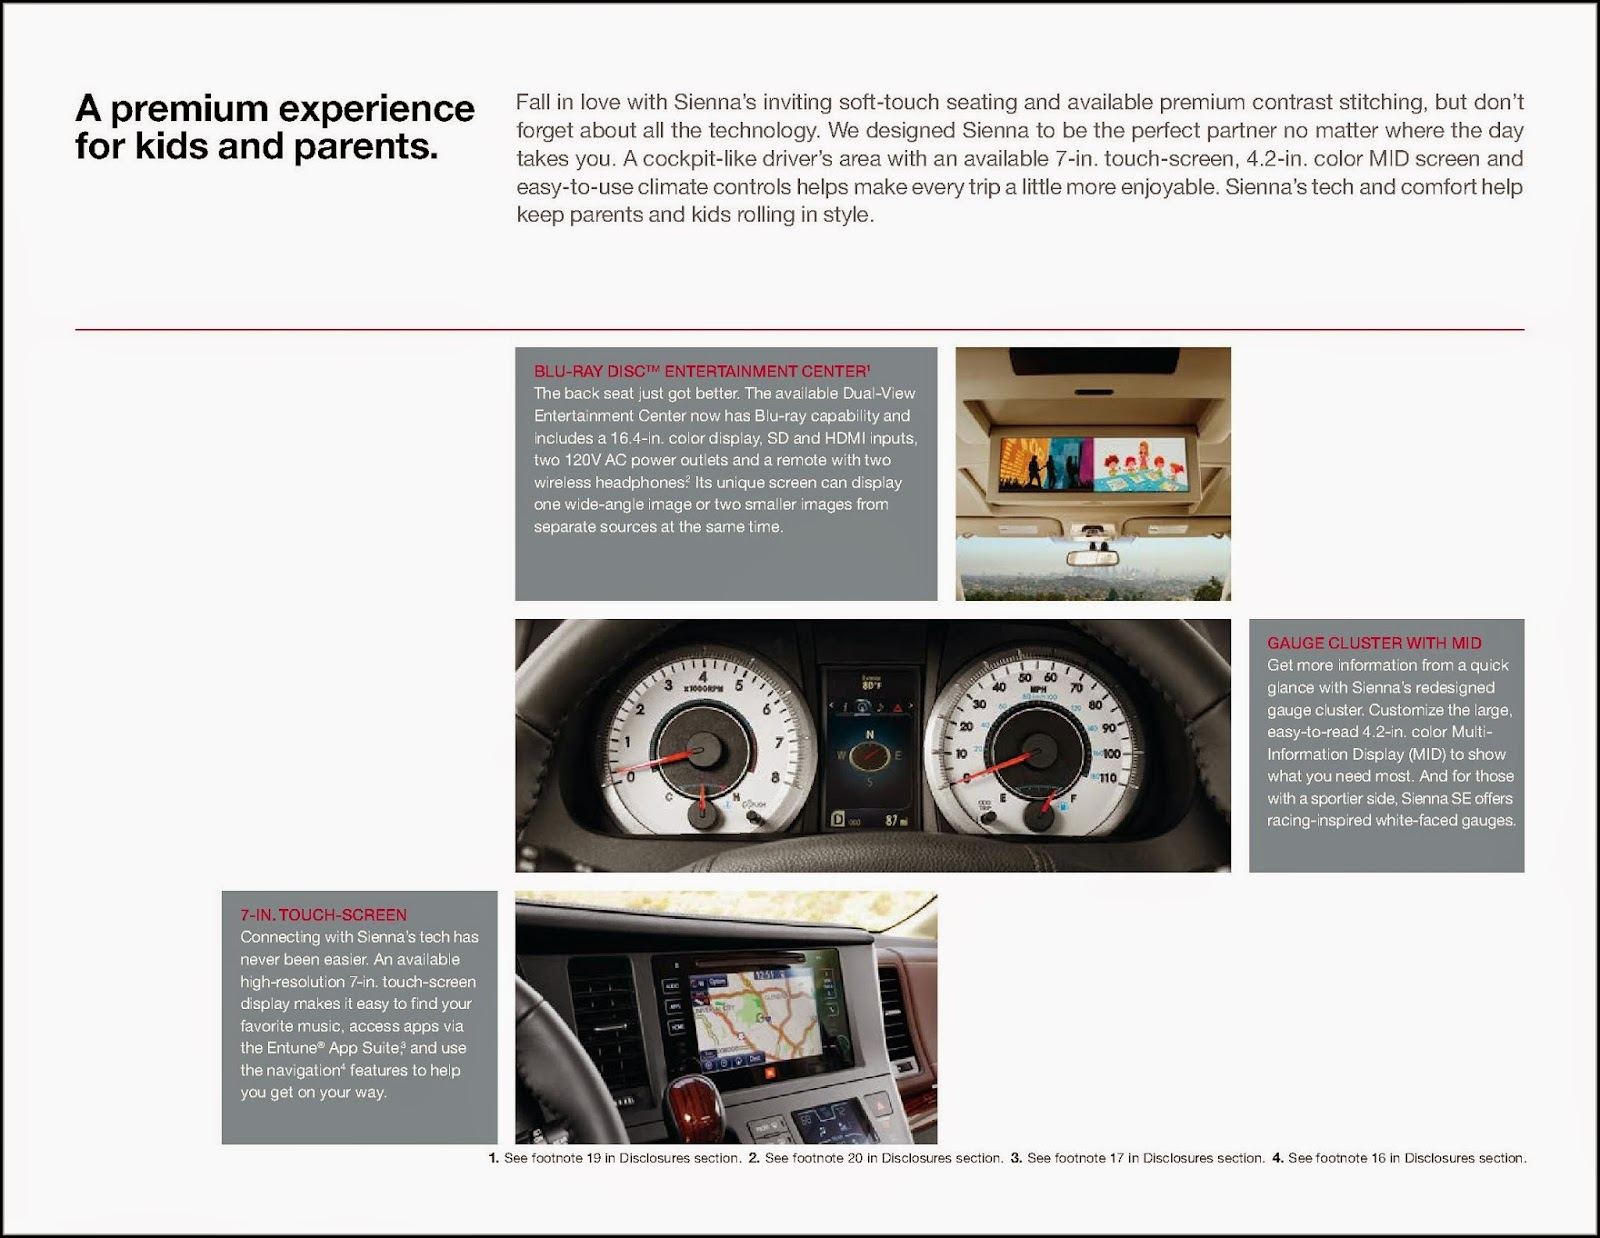 Latest Toyota Models, Latest Toyota Models 2016, All New Latest Toyota Cars Models List, Toyota, Toyota Cars, Toyota Cars Models, Toyota Models,Toyota Pakistan, Toyota Mobility Feature, Toyota Vehicle, Toyota Cars List, All Toyota Cars, Toyota Rent A Car, Toyota Rank, Toyota Reviews, Toyota Pakistan, Toyota India, Toyota Location , Toyota Certified Used Cars, Toyota  Certified Used Vehicles, Toyota Owners, Toyota Searches, Toyota Shopping Tools, Toyota Dealers, Toyota Cars Prices, Toyota Car Tips & Advice, Toyota Rate List, Toyota Cars Special Models, Toyota Cars Prices, Toyota Hybrids, Toyota Crossovers, Toyota SUVs, Toyota Trucks, Toyota Minivans, Toyota All Vehicles, Toyota Models Features, Toyota Prices In Our Country, New Toyota Yaris Prices, New Toyota Corolla Prices, New Toyota Prius C Prices, New Toyota Tacoma Prices, New Toyota Camry Prices, New Toyota RAV4 Prices, New Toyota Prius Prices, New Toyota Prius V Prices, New Toyota Camry Hybrids Prices, New Toyota Tundra Prices, New Toyota Sienna Prices, New Toyota Venza Prices, Toyota Mobile Phone Compatibility New Toyota Highlander Prices, New Toyota Prius Plug in-Hybrids Prices, Toyota Service Campaigns New Toyota Avalon Prices, New Toyota 4Runner Prices, New Toyota Avalon Hybrid Prices, New Toyota Sequoia Prices, New Toyota Highlander Prices, New Toyota Land Cruiser Prices, Toyota Cars Accessories, Toyota Updates, Build Your Toyota, Toyota Inventory, Toyota Hybrids & Evs, Toyota Hybrid Cars, Toyota Financial Services, Toyota Hybrid SUVs, Toyota Upcoming Vehicles, Toyota Concept Vehicles, Toyota Safety Recalls, Toyota Shops, Toyota Showrooms, Toyota Prices List, Toyota Facebook, Toyota Twitter, Toyota Youtube, Toyota Dailymotion, Toyota Google +, Toyota Instagram, Toyota Official Website, Toyota Cars Videos, Toyota  Careers, Toyota  Our Company, Toyota USA Newsroom, Toyota Worldwide, Toyota Racing, Toyota Picture Gallery, Toyota Catalogue Pdf , Toyota Catalogue, Toyota Hilux Catalogue Pdf, Toyota Forklift Catalogue pdf, Toyota Parts Catalogue Pdf, Toyota Parts Catalogue, Toyota Parts Price, Toyota Parts Dealer, Toyota Parts In Pakistan, Toyota Qatar, Toyota Quantum, Toyota Quality Management, Toyota Q1, Toyota Walton, Toyota Wiki, Toyota Wish, Toyota Eastern Motors, Toyota Engines, Toyota Estima, Toyota Etios, Toyota Ravi, Toyota Rush, Toyota Rawal Motors, Toyota Rush Price In Pakistan, Toyota Tundra, Toyota Thailand, Toyota Tacoma, Toyota Townace, Toyota Yaris Hybrid, Toyota Yaris 2014, Toyota Yaris Price, Toyota Usa, Toyota Uae, Toyota Uk, Toyota Used Cars, Toyota Indus, Toyota Islamabad, Toyota Iq, Toyota India, Toyota Official Website, Toyota Oman, Toyota Olxm, Toyota Owners Manual, Toyota Prius, Toyota Prado, Toyota Passo, Toyota Altis, Toyota Airport Motors, Toyota Altis Grande, Toyota Avalon, Toyota Saudi, Toyota Surf, Toyota Supra, Toyota Starlet, Toyota Dream Car, Toyota Defence Motors, Toyota Dubai, Toyota Duet, Toyota Fortuner, Toyota Fortuner 2016, Toyota Faisalabad, Toyota Fj Cruiser, Toyota G Chip, Toyota G Touring, Toyota G Touring Specs, Toyota G Touring For Sale, Toyota Hiace, Toyota Japan, Toyota Japan Cars, Toyota Jobs, Latest Toyota Jobs, Toyota Jeep, Toyota Traditions, Toyota Cars Colours, Toyota Karachi, Toyota K Engine, Toyota K Engine, Toyota K Engine, Toyota K 70, Toyota Land Cruiser, Toyota Land Cruiser V8, Toyota Lahore, Toyota Zarghoon, Toyota Zx, Toyota Zelas, Toyota Zest, Toyota Xli, Toyota X, Toyota X Corolla, Toyota Axio, Toyota X Corolla 2016, Toyota X Runner For Sale, Toyota Corolla 2016, Toyota Vitz, Toyota Vios, Toyota Vitz For Sale In Karachi, Toyota Vitz 2016, Toyota Catalogue Download, Toyota Catalogue Free, Toyota Accessories Catalogue, Toyota Aqua Catalogue, Toyota Avanza Catalogue, Toyota Spare Parts Catalogue, Toyota Belta, Toyota Belta For Sale, Toyota Belta Price In Pakistan, Toyota New Model, Toyota New Model 2015, Toyota New Model 2016, Toyota Noah, Toyota Navigation, Toyota Motors, Toyota Motors Pakistan, Toyota Mirai, Toyota Mark X, Latest Toyota Models 2017, Latest Toyota Models 2018, Latest Toyota Models 2019, Latest Toyota Models 2020, Latest Toyota Models 2021.Latest Toyota Models For Rent, Toyota Premio Categories, Toyota Product Categories, Toyota Premio Categories, Toyota Product Categories, Toyota Old Models, Toyota Old Cars, Toyota Old Models In Pakistan, Toyota Old Cars For Sale In Lahore, Latest Model Of Toyota Corolla, Latest Model Of Toyota Innova, Latest Model Of Toyota Camry, Latest Model Of Toyota Vios, Model Of Toyota Cars List, Model Of Toyota Cars, Model Of Toyota Camry, Toyota Model Pictures, Toyota Corolla Model Pictures, Toyota Car Model Pictures, Toyota New Model Picture, Toyota Cars Model Wallpapers, Toyota Cars Model Pictures, Toyota Cars Model Pics, Toyota Cars Model Images, Toyota Cars Model Photos, Toyota Cars Model Desktop Wallpapers